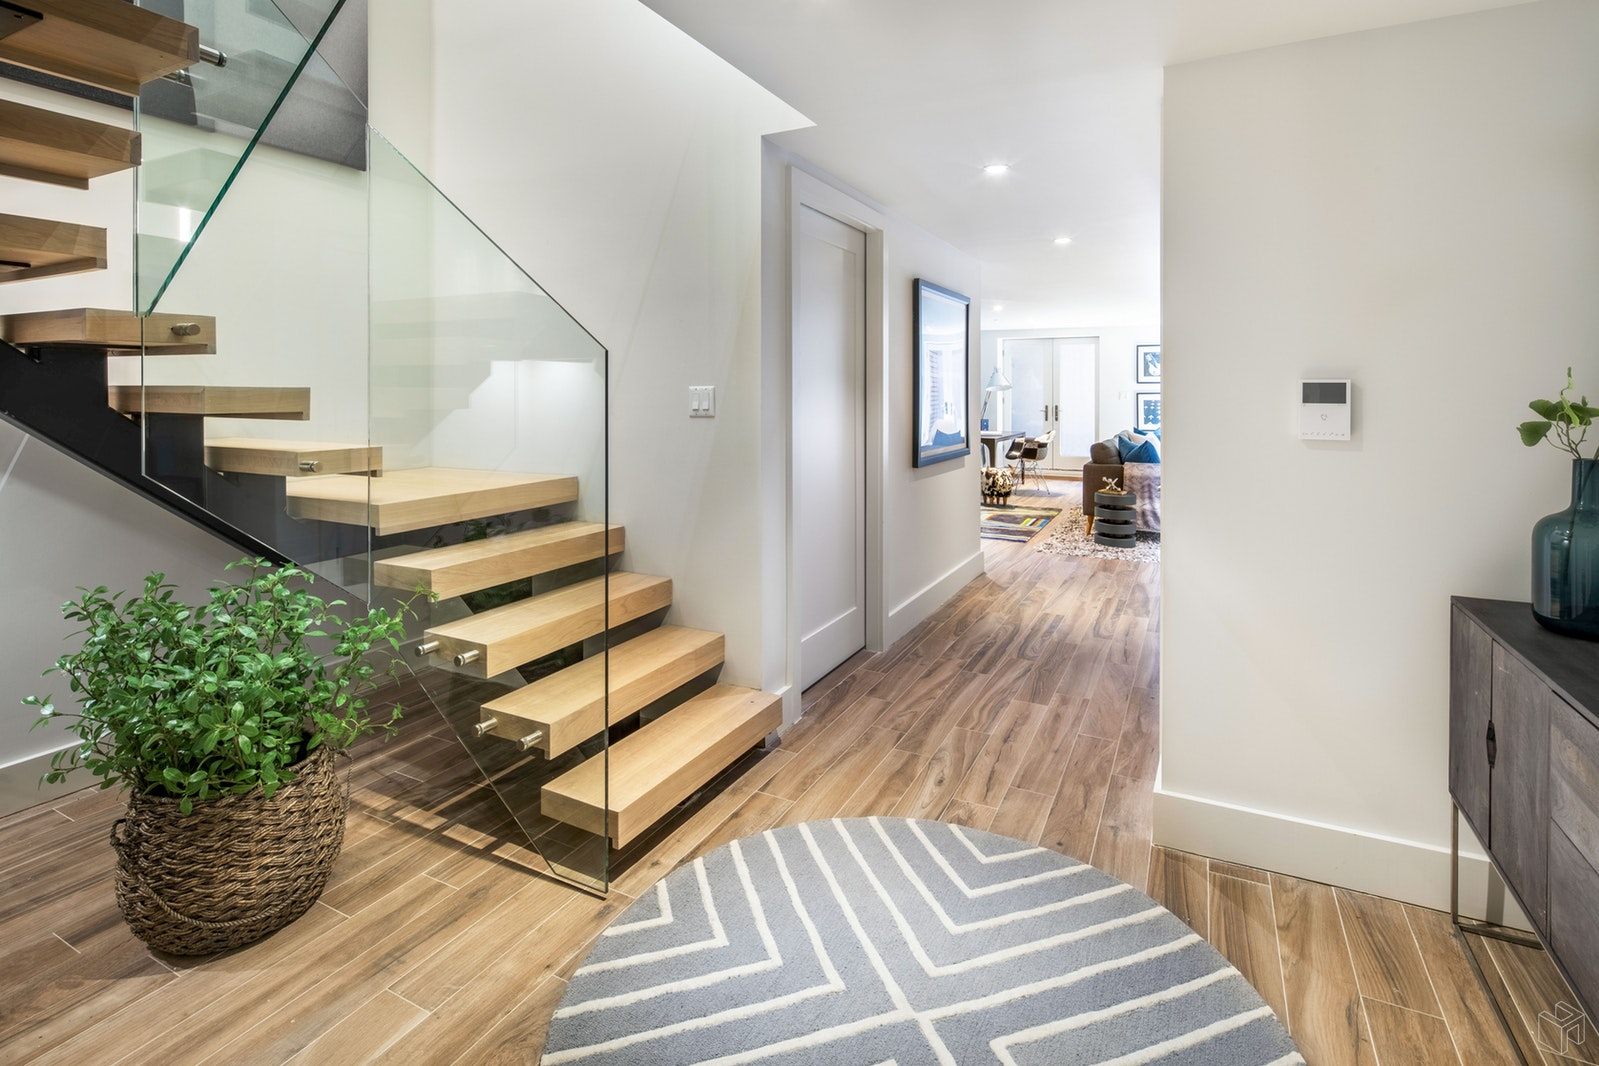 800 Dean Street 1, Prospect Heights, Brooklyn, NY, 11238, $1,495,000, Property For Sale, Halstead Real Estate, Photo 10